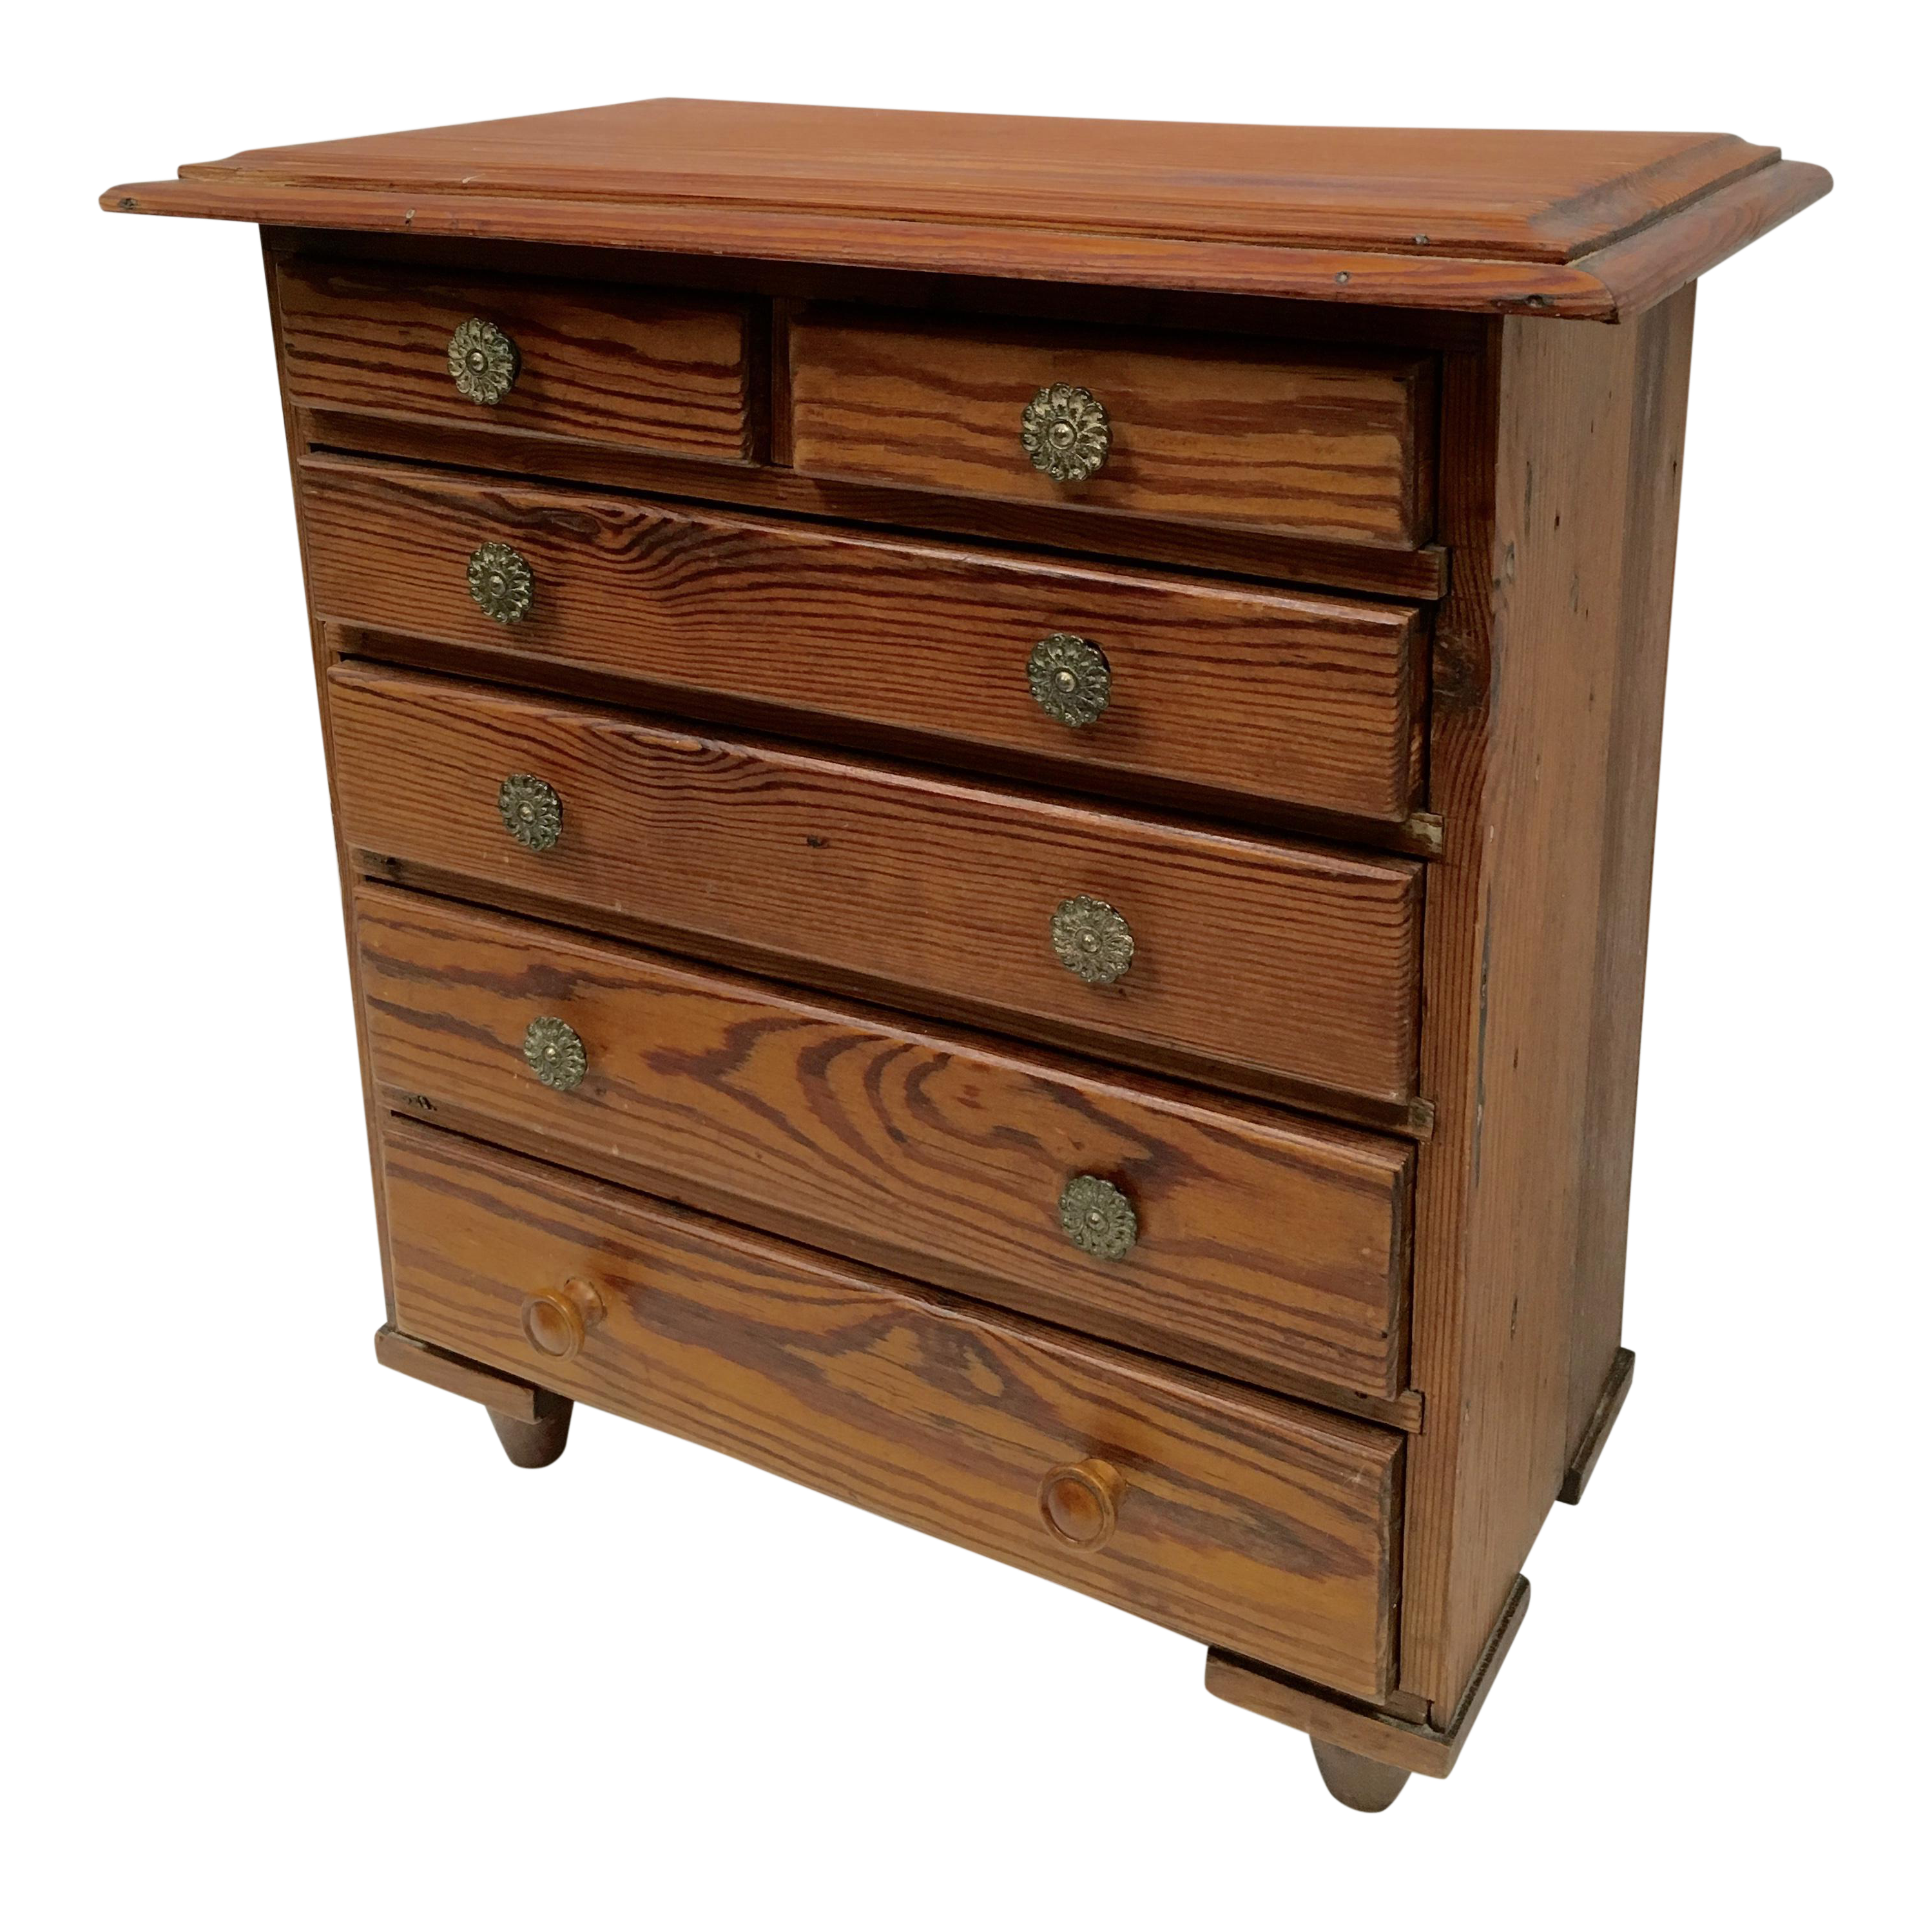 Crate grain png. Vintage hand crafted pine